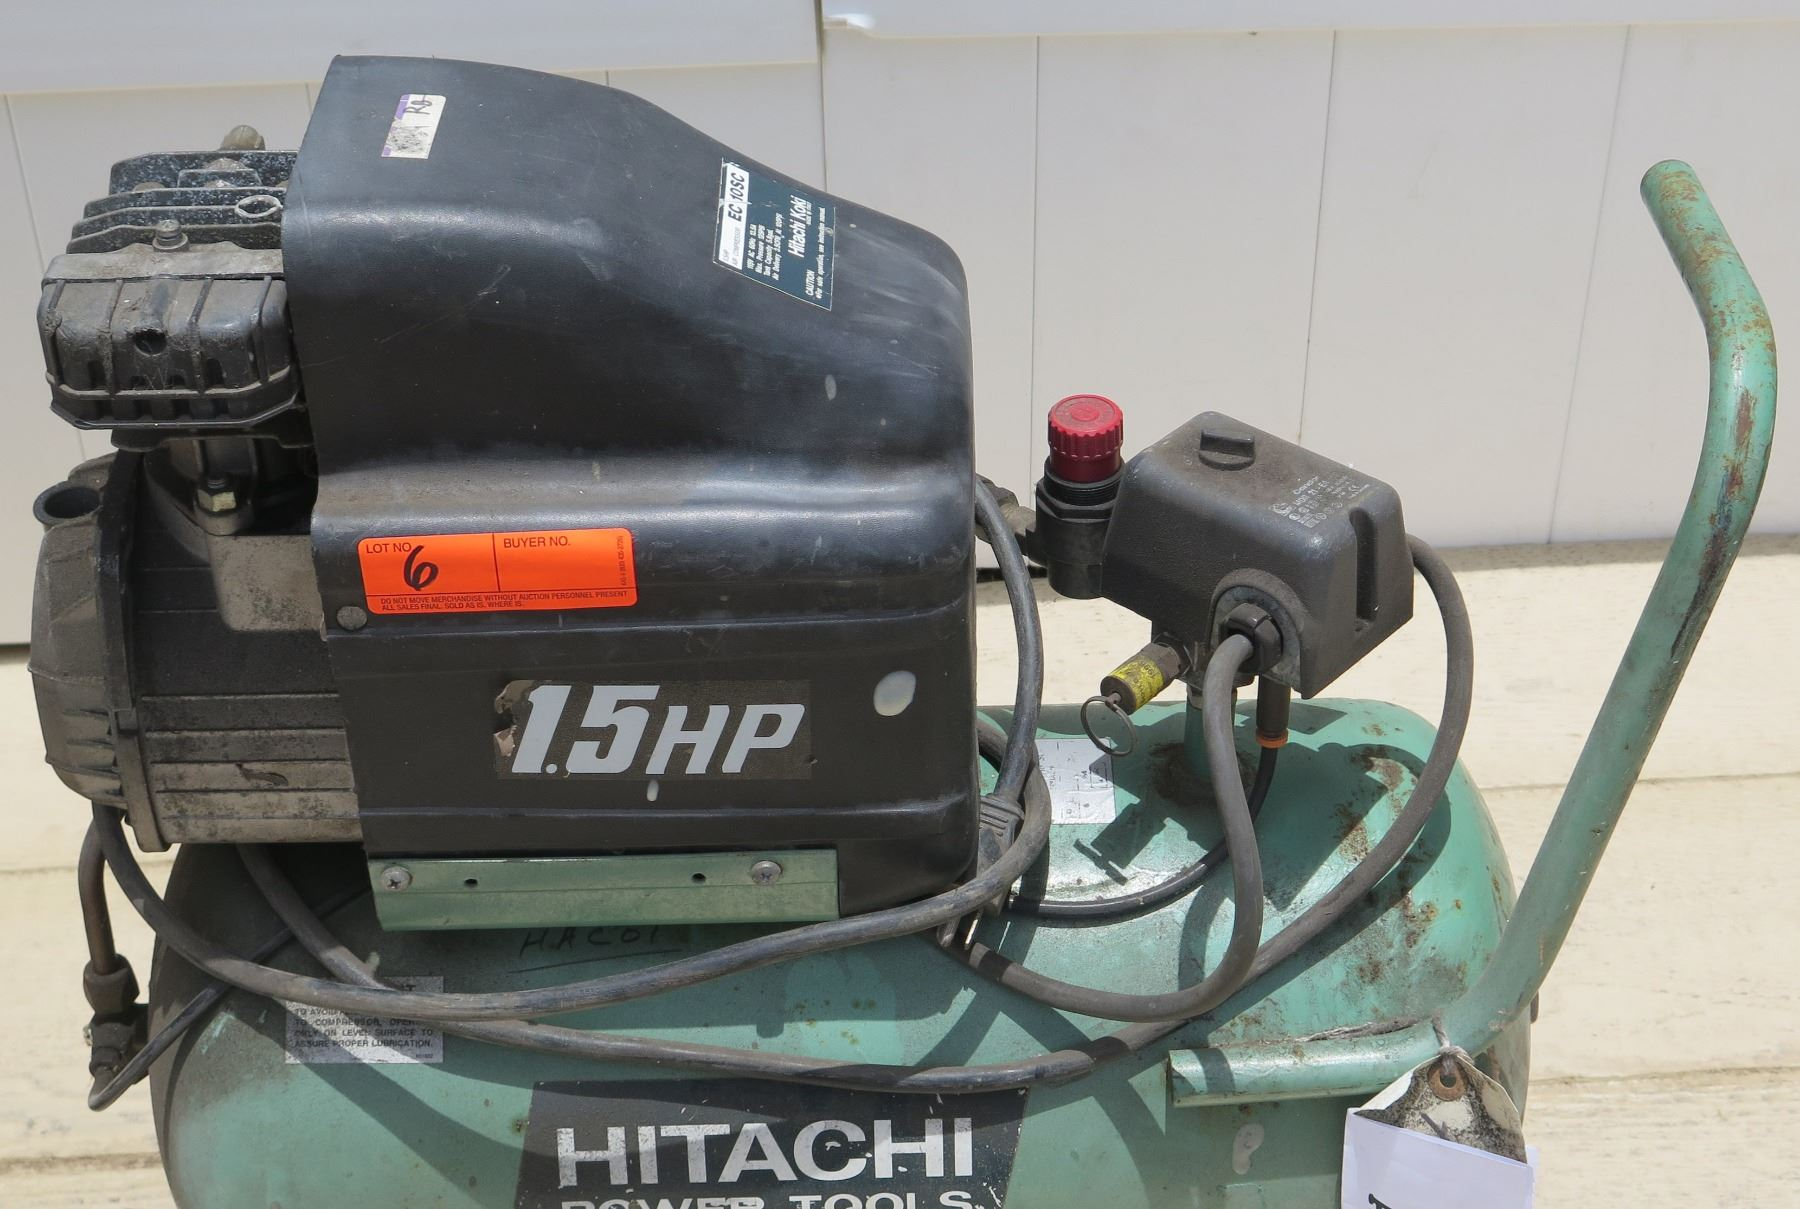 small resolution of  image 2 tools hitachi koki ec 10sc and stanley bostitch cwc156 1 5 hp air